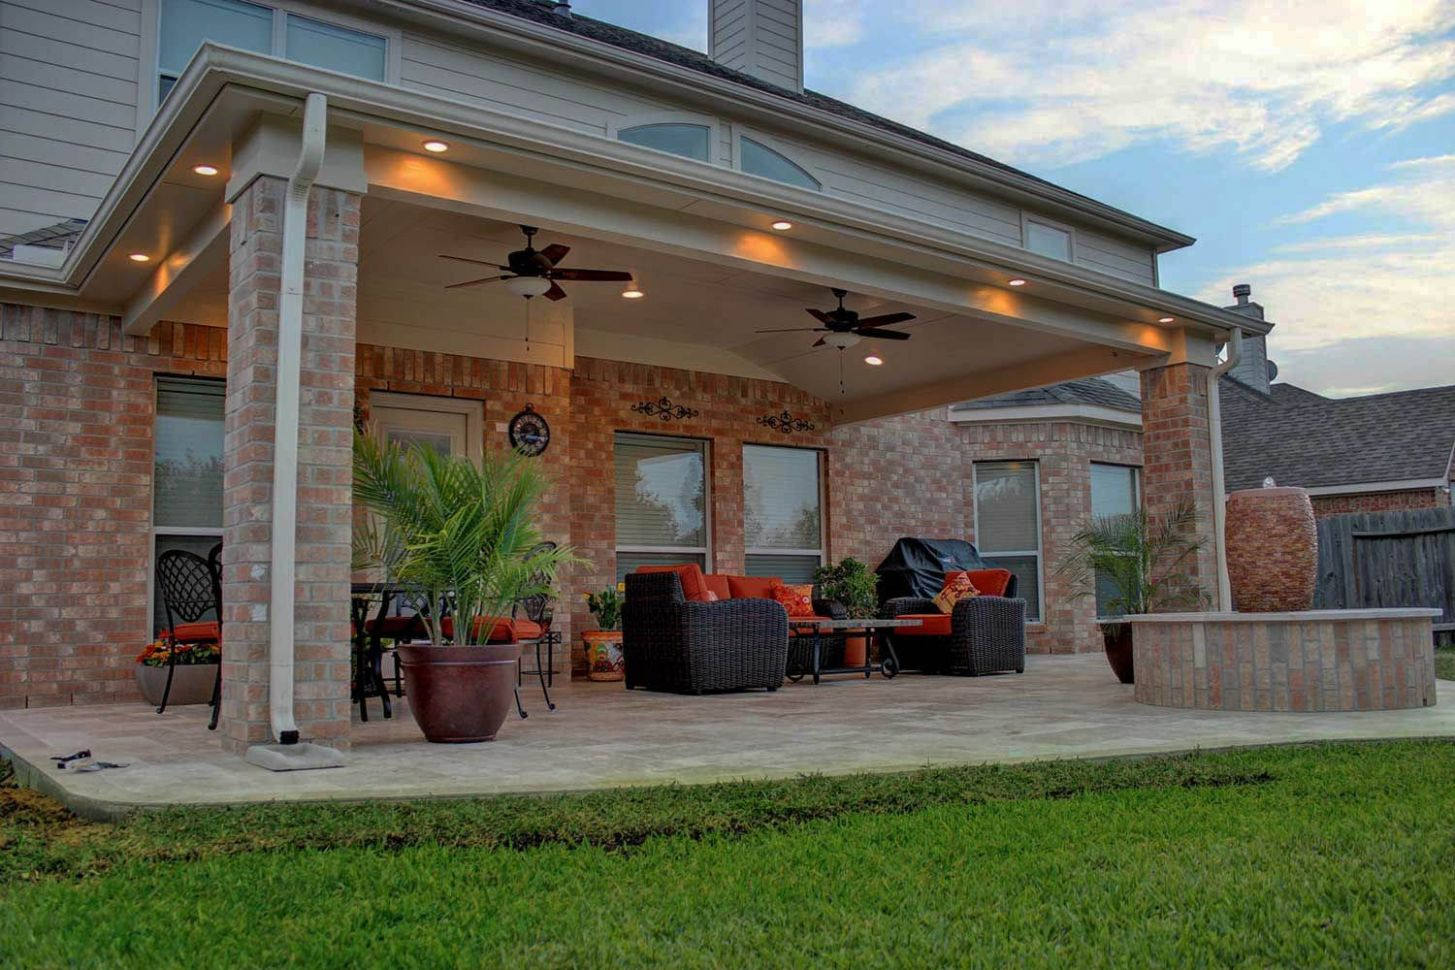 Stylish Ways to Decorate l shaped covered patio ideas on this ...